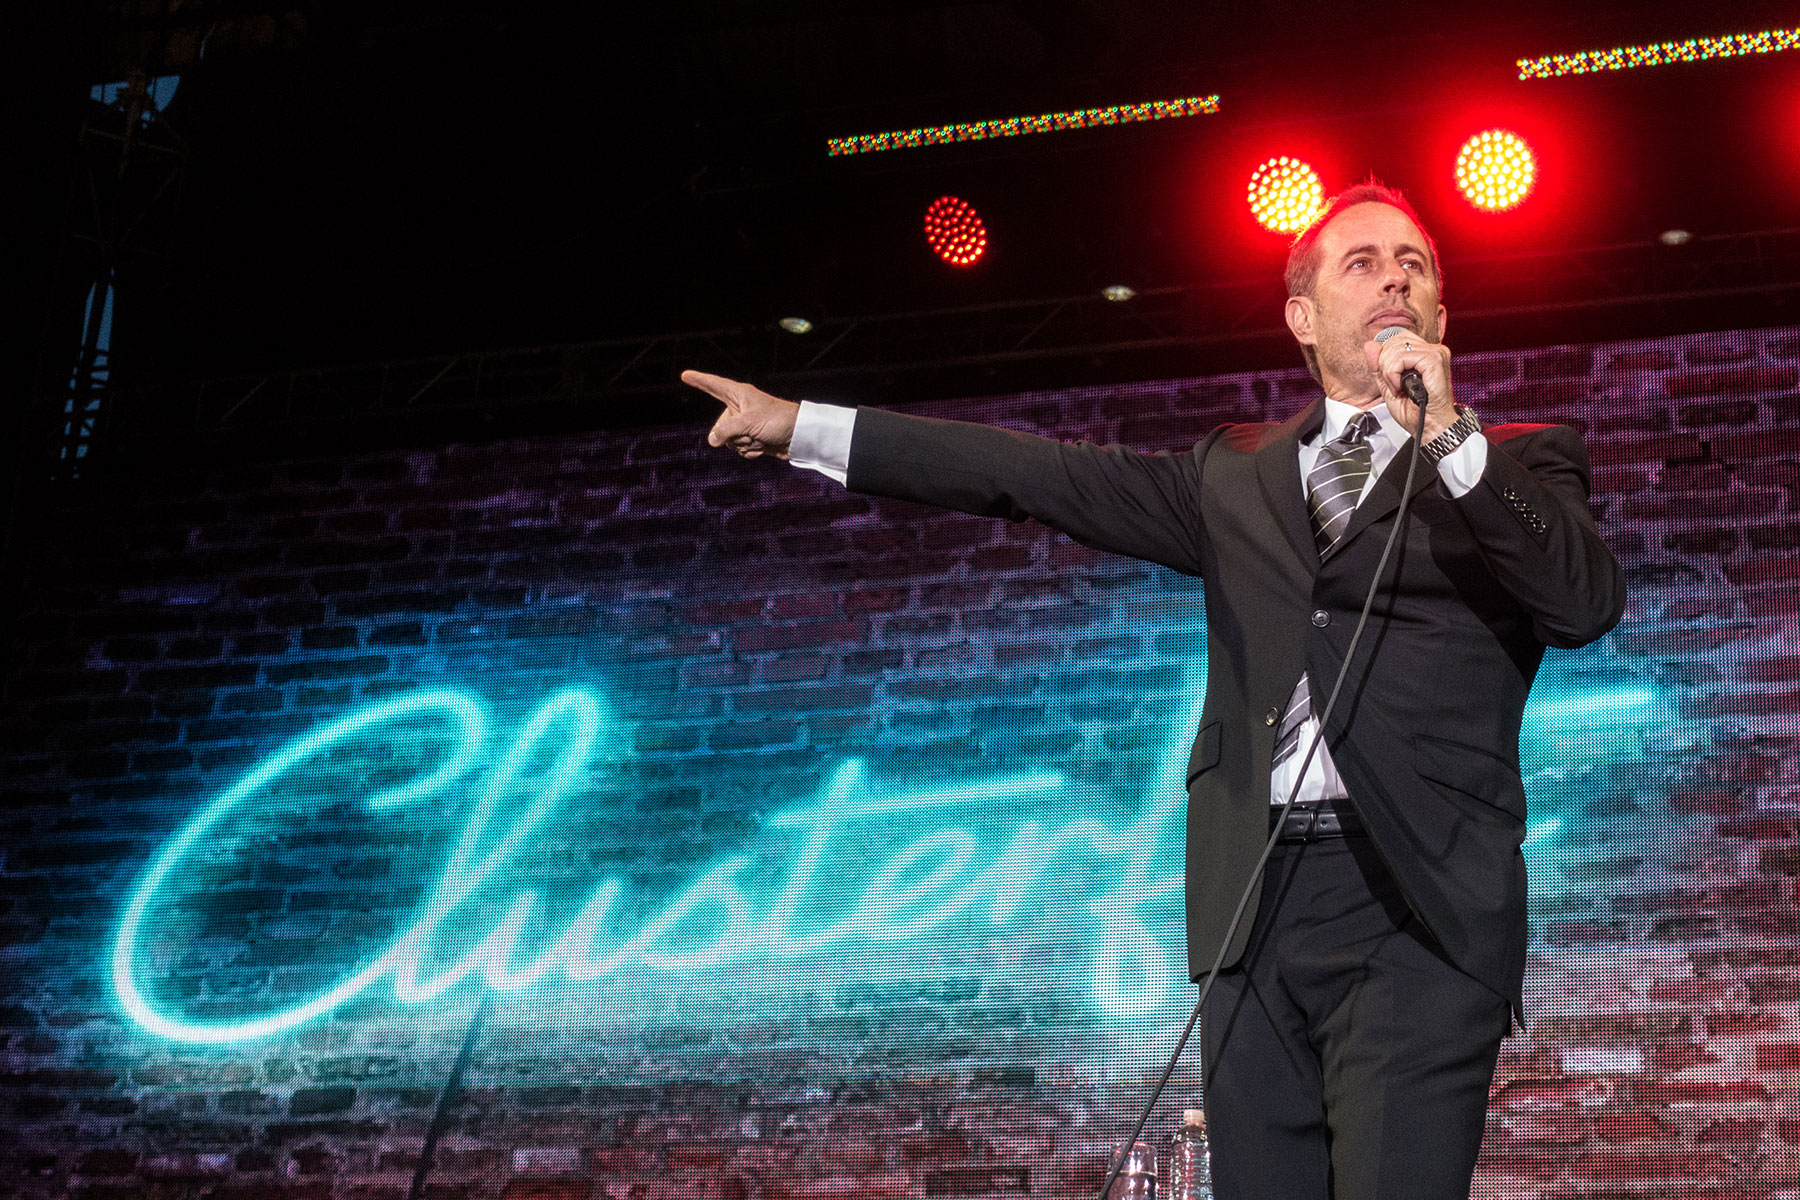 Seinfeld at Clusterfest